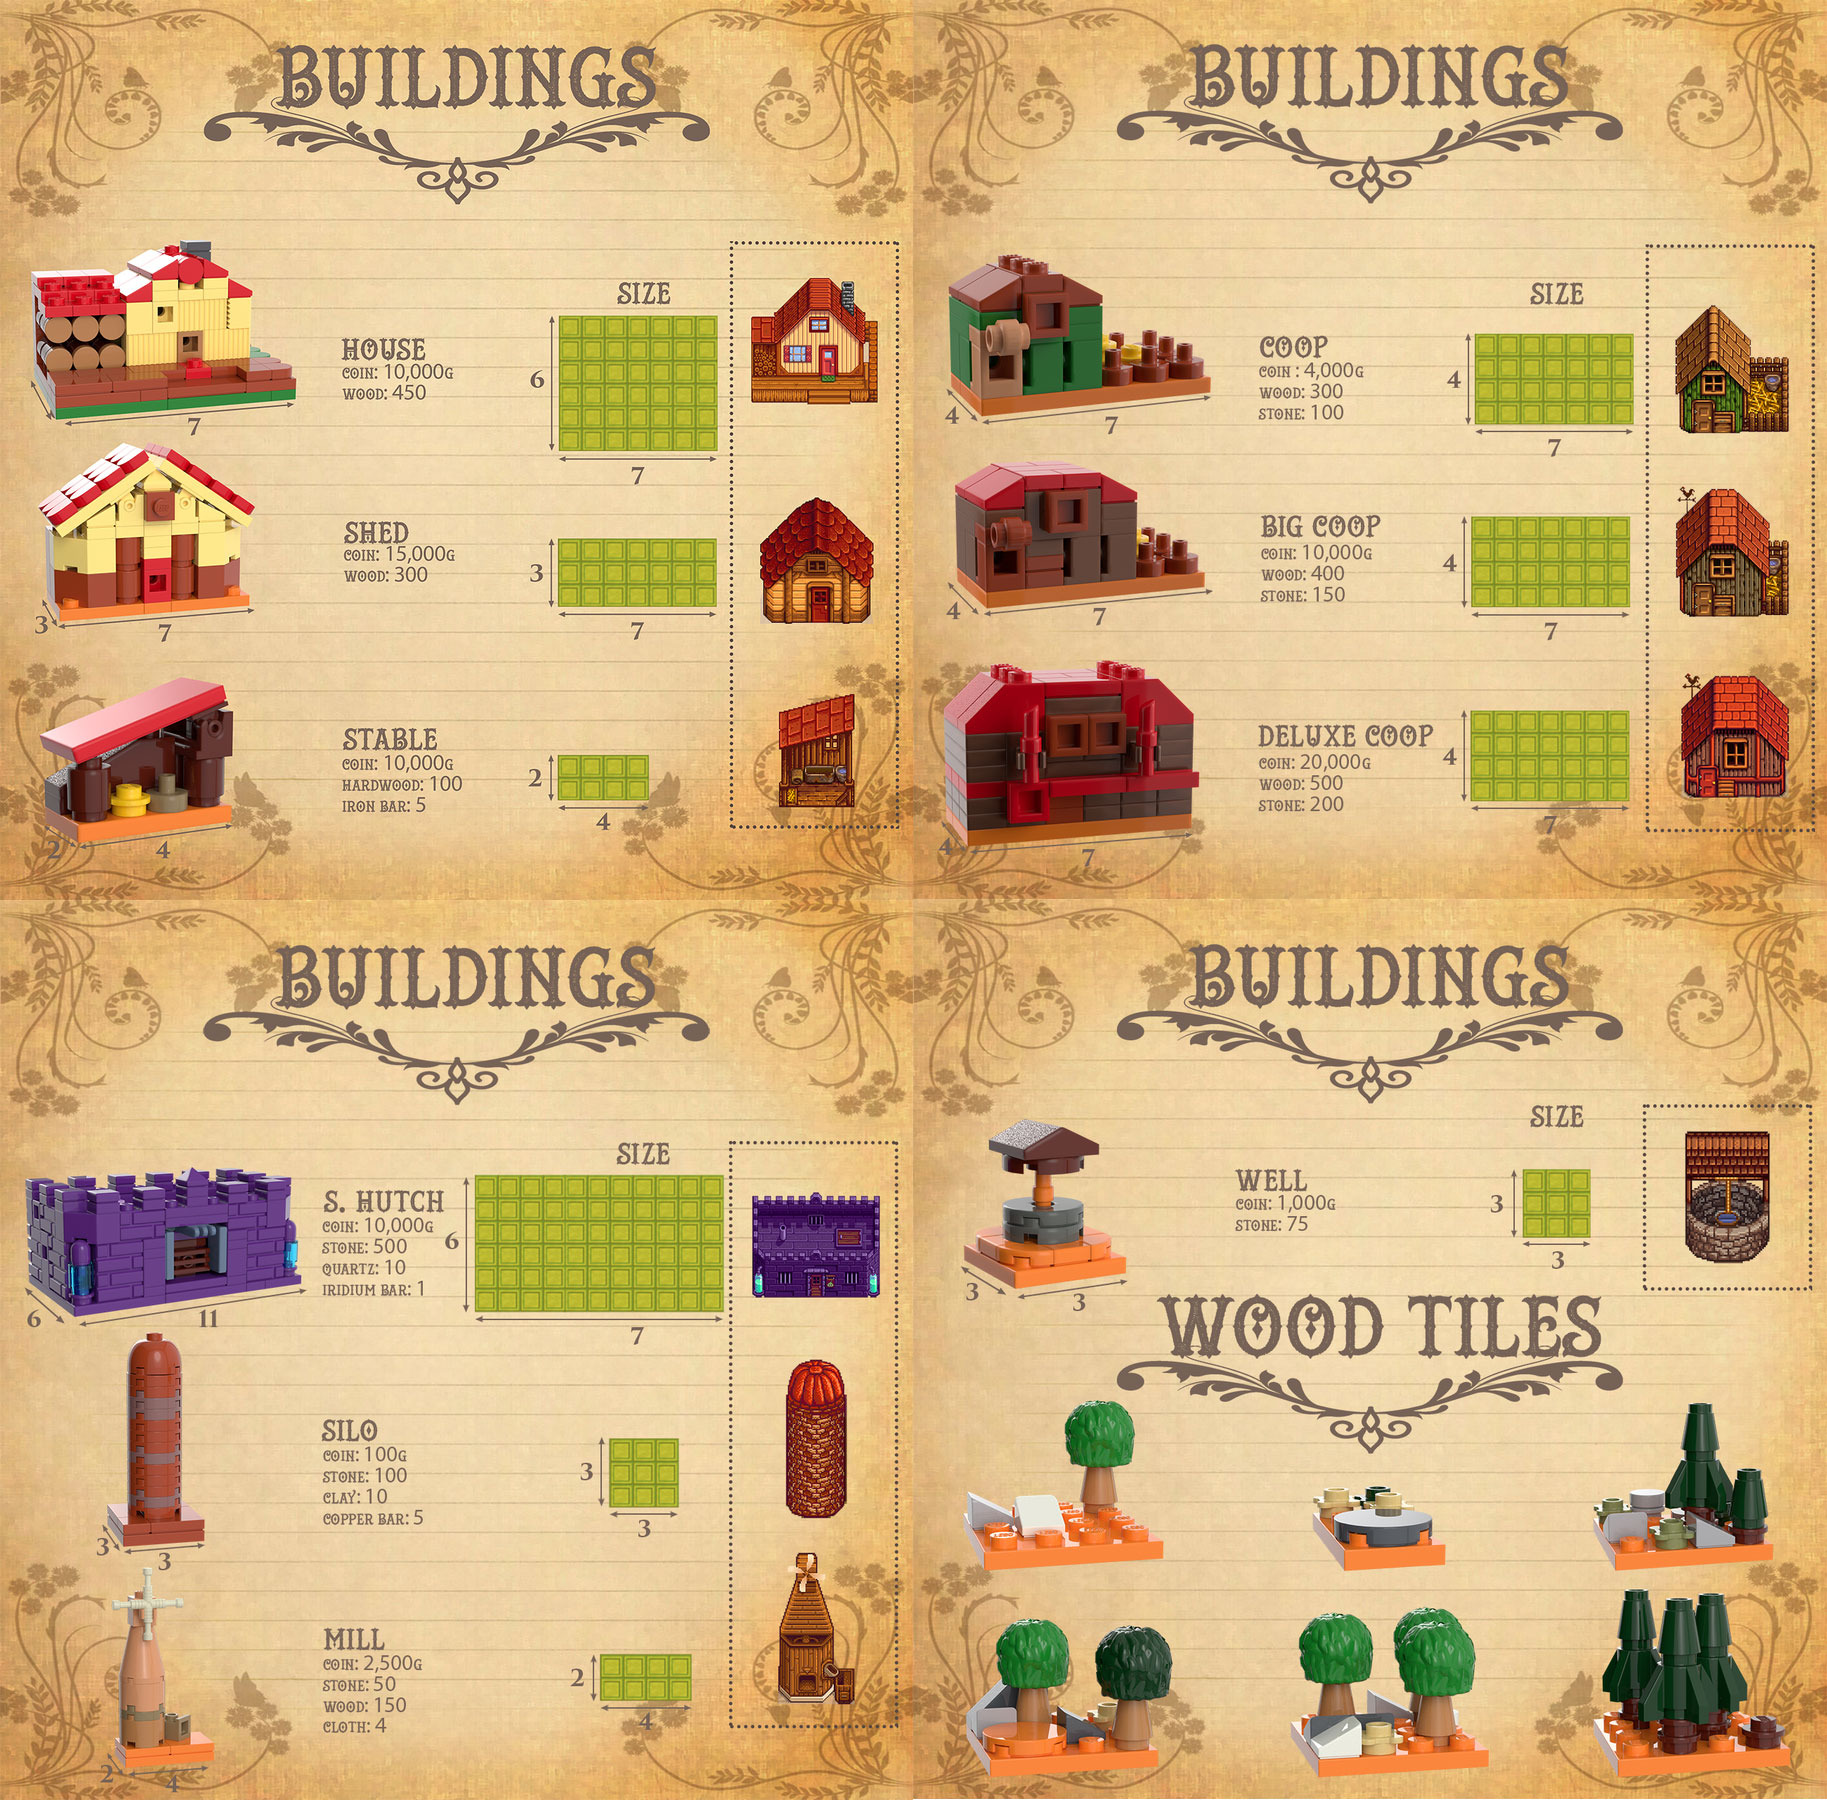 Buildings and Upgrades, Lego Stardew Valley Farm